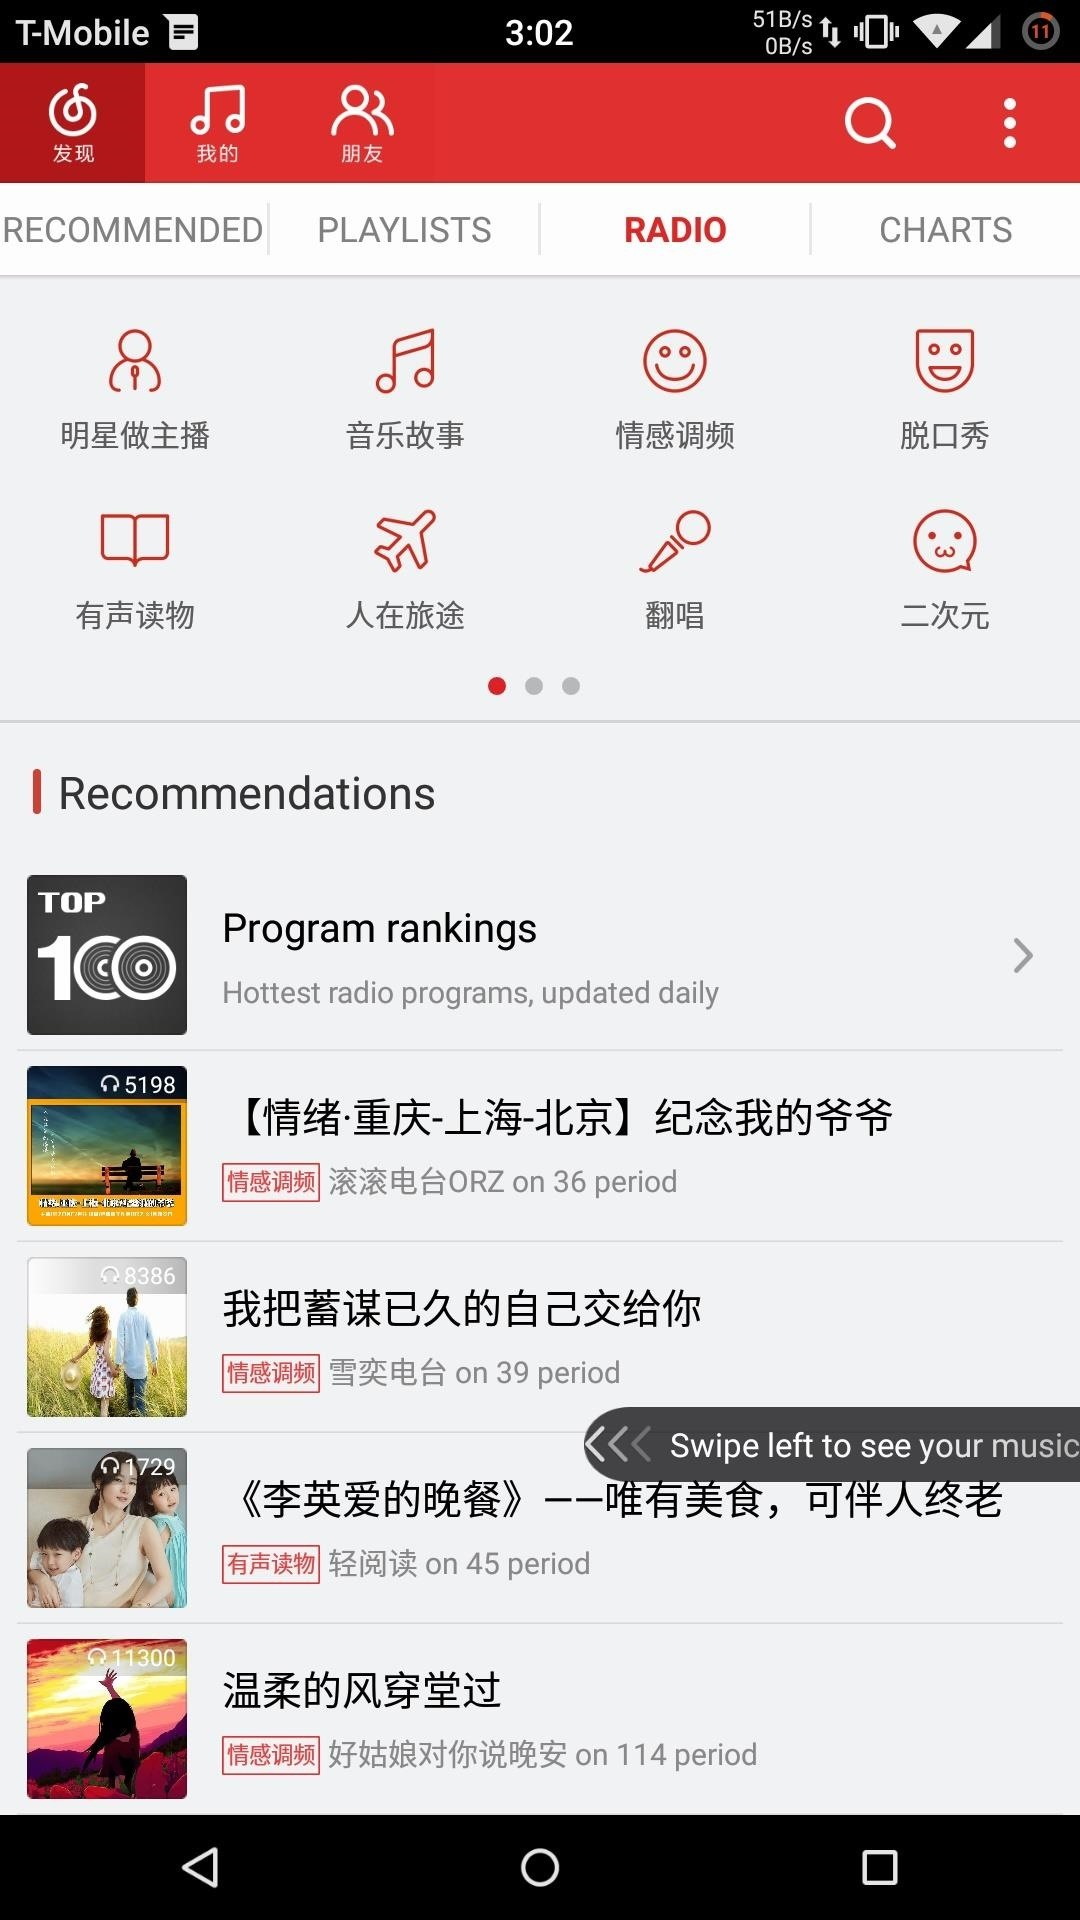 NetEase Music: The Free Service That Will Get You to Leave Spotify